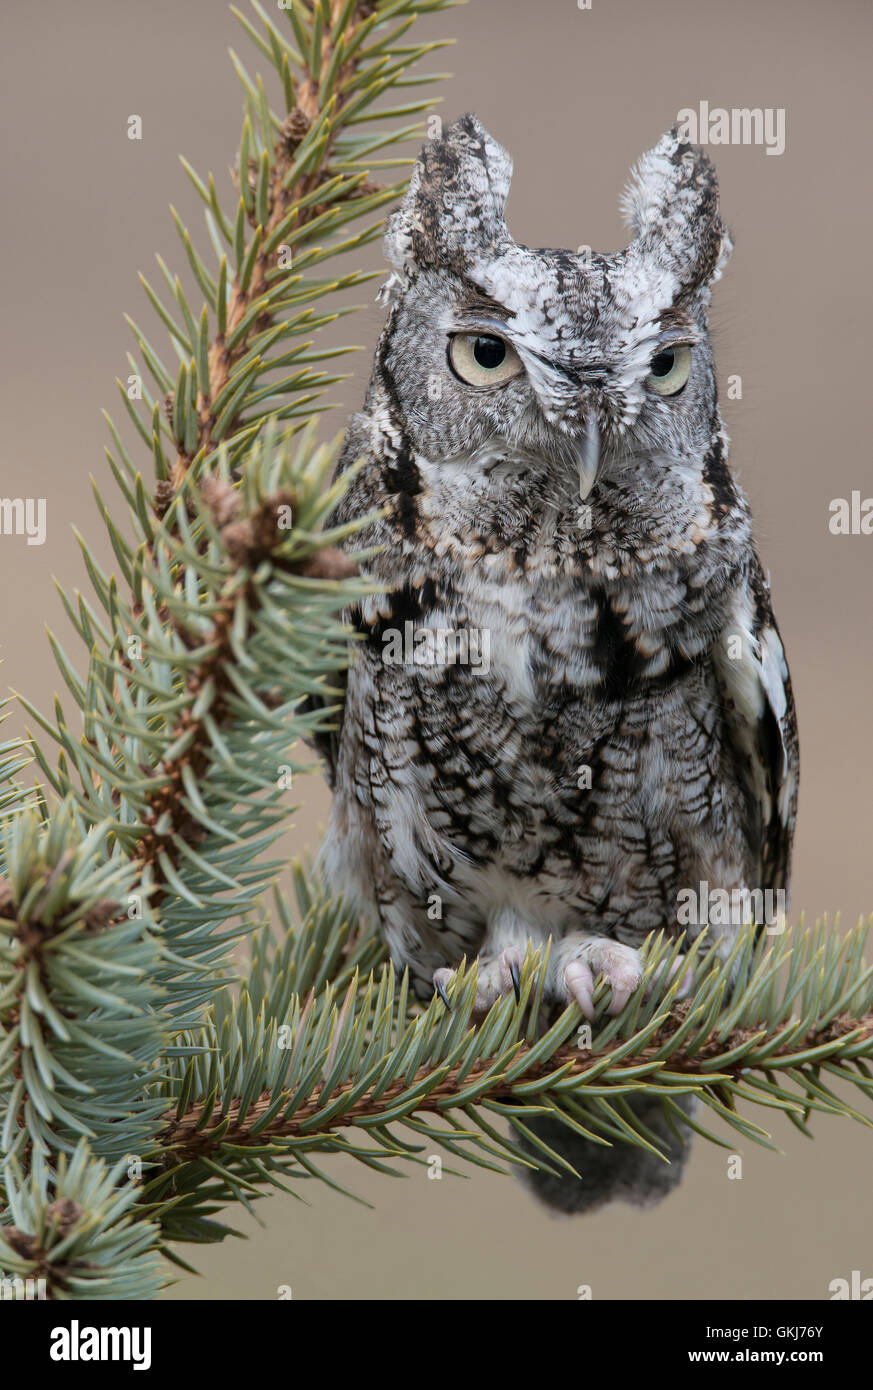 Eastern Gray Screech Owl Otus asio, gray phase, sitting on Spruce tree, Eastern North America. - Stock Image